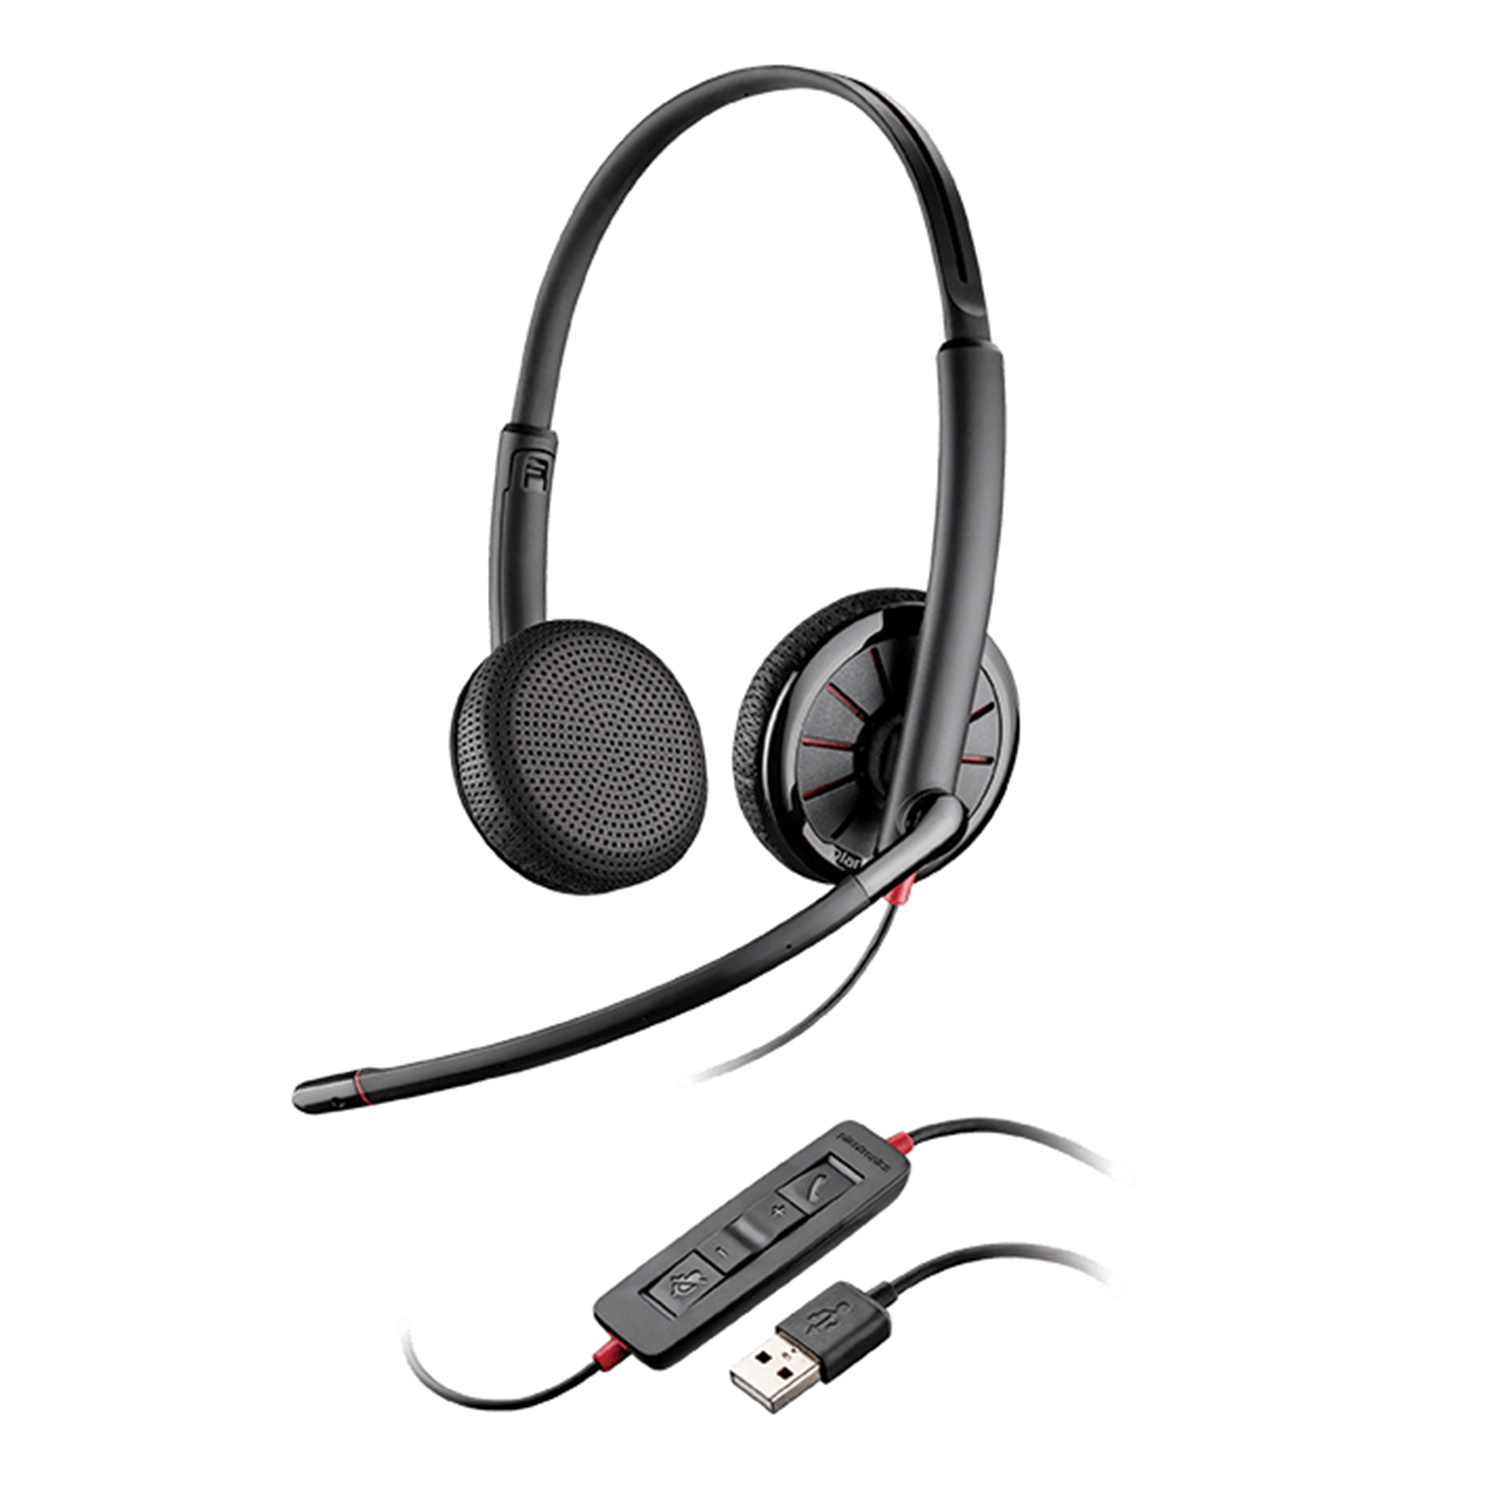 Plantronics Blackwire C325-M Binaural USB Headset